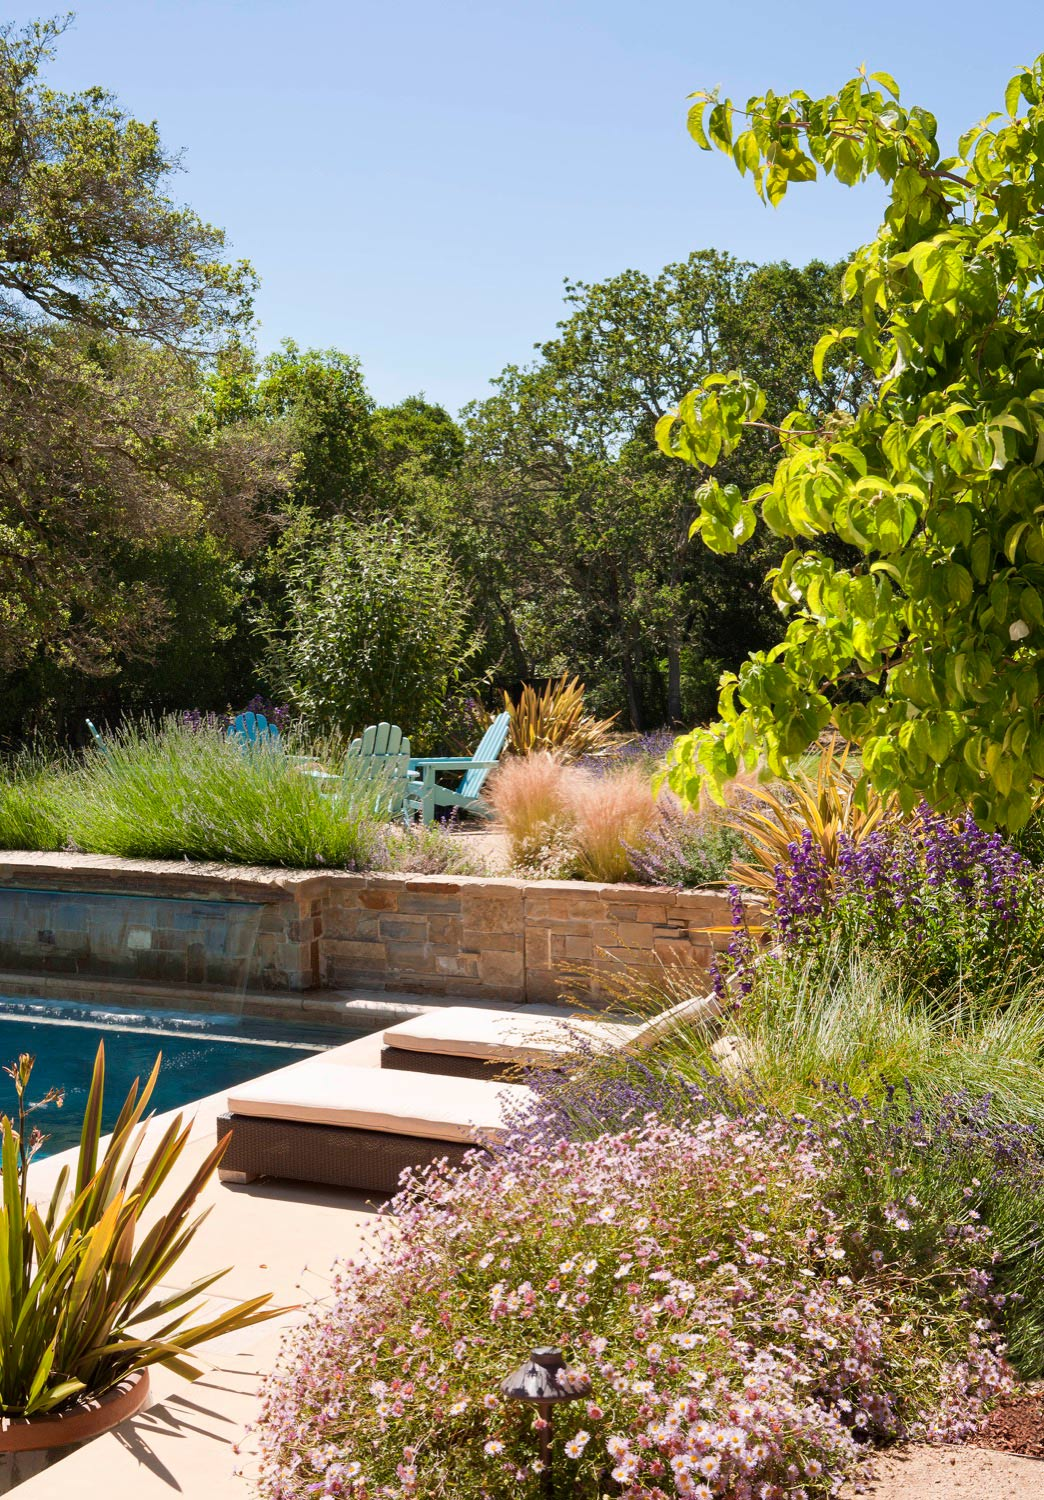 A fountain spills into the pool, creating a subtle and relaxing sound.